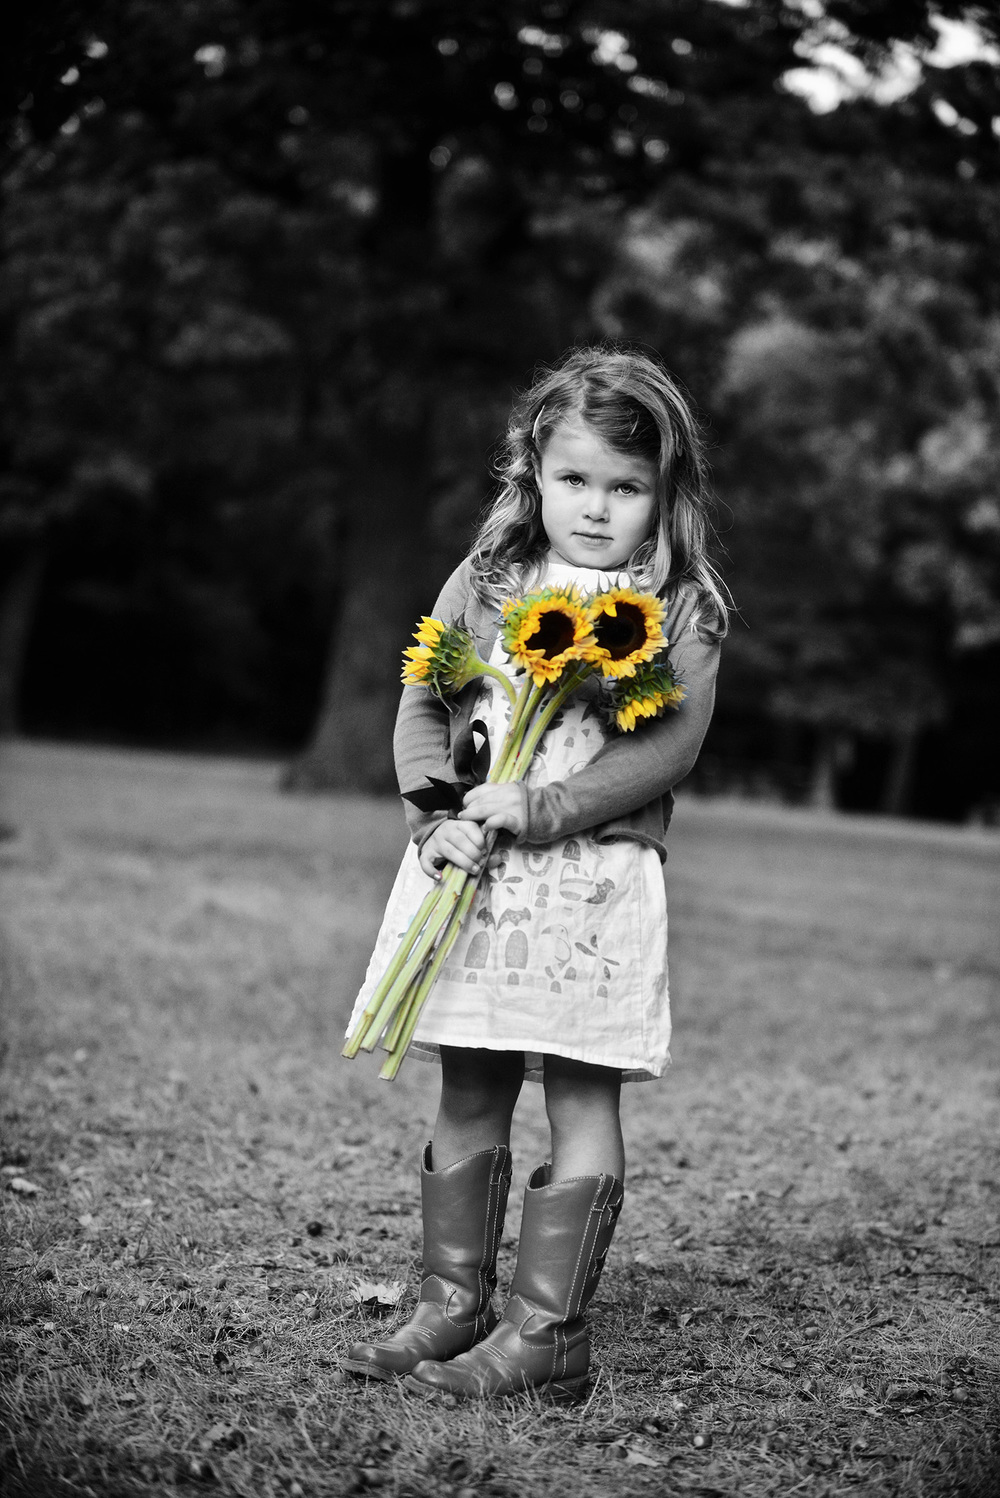 DSC_5550 holding sunflowers B&W colored web gallery.jpg